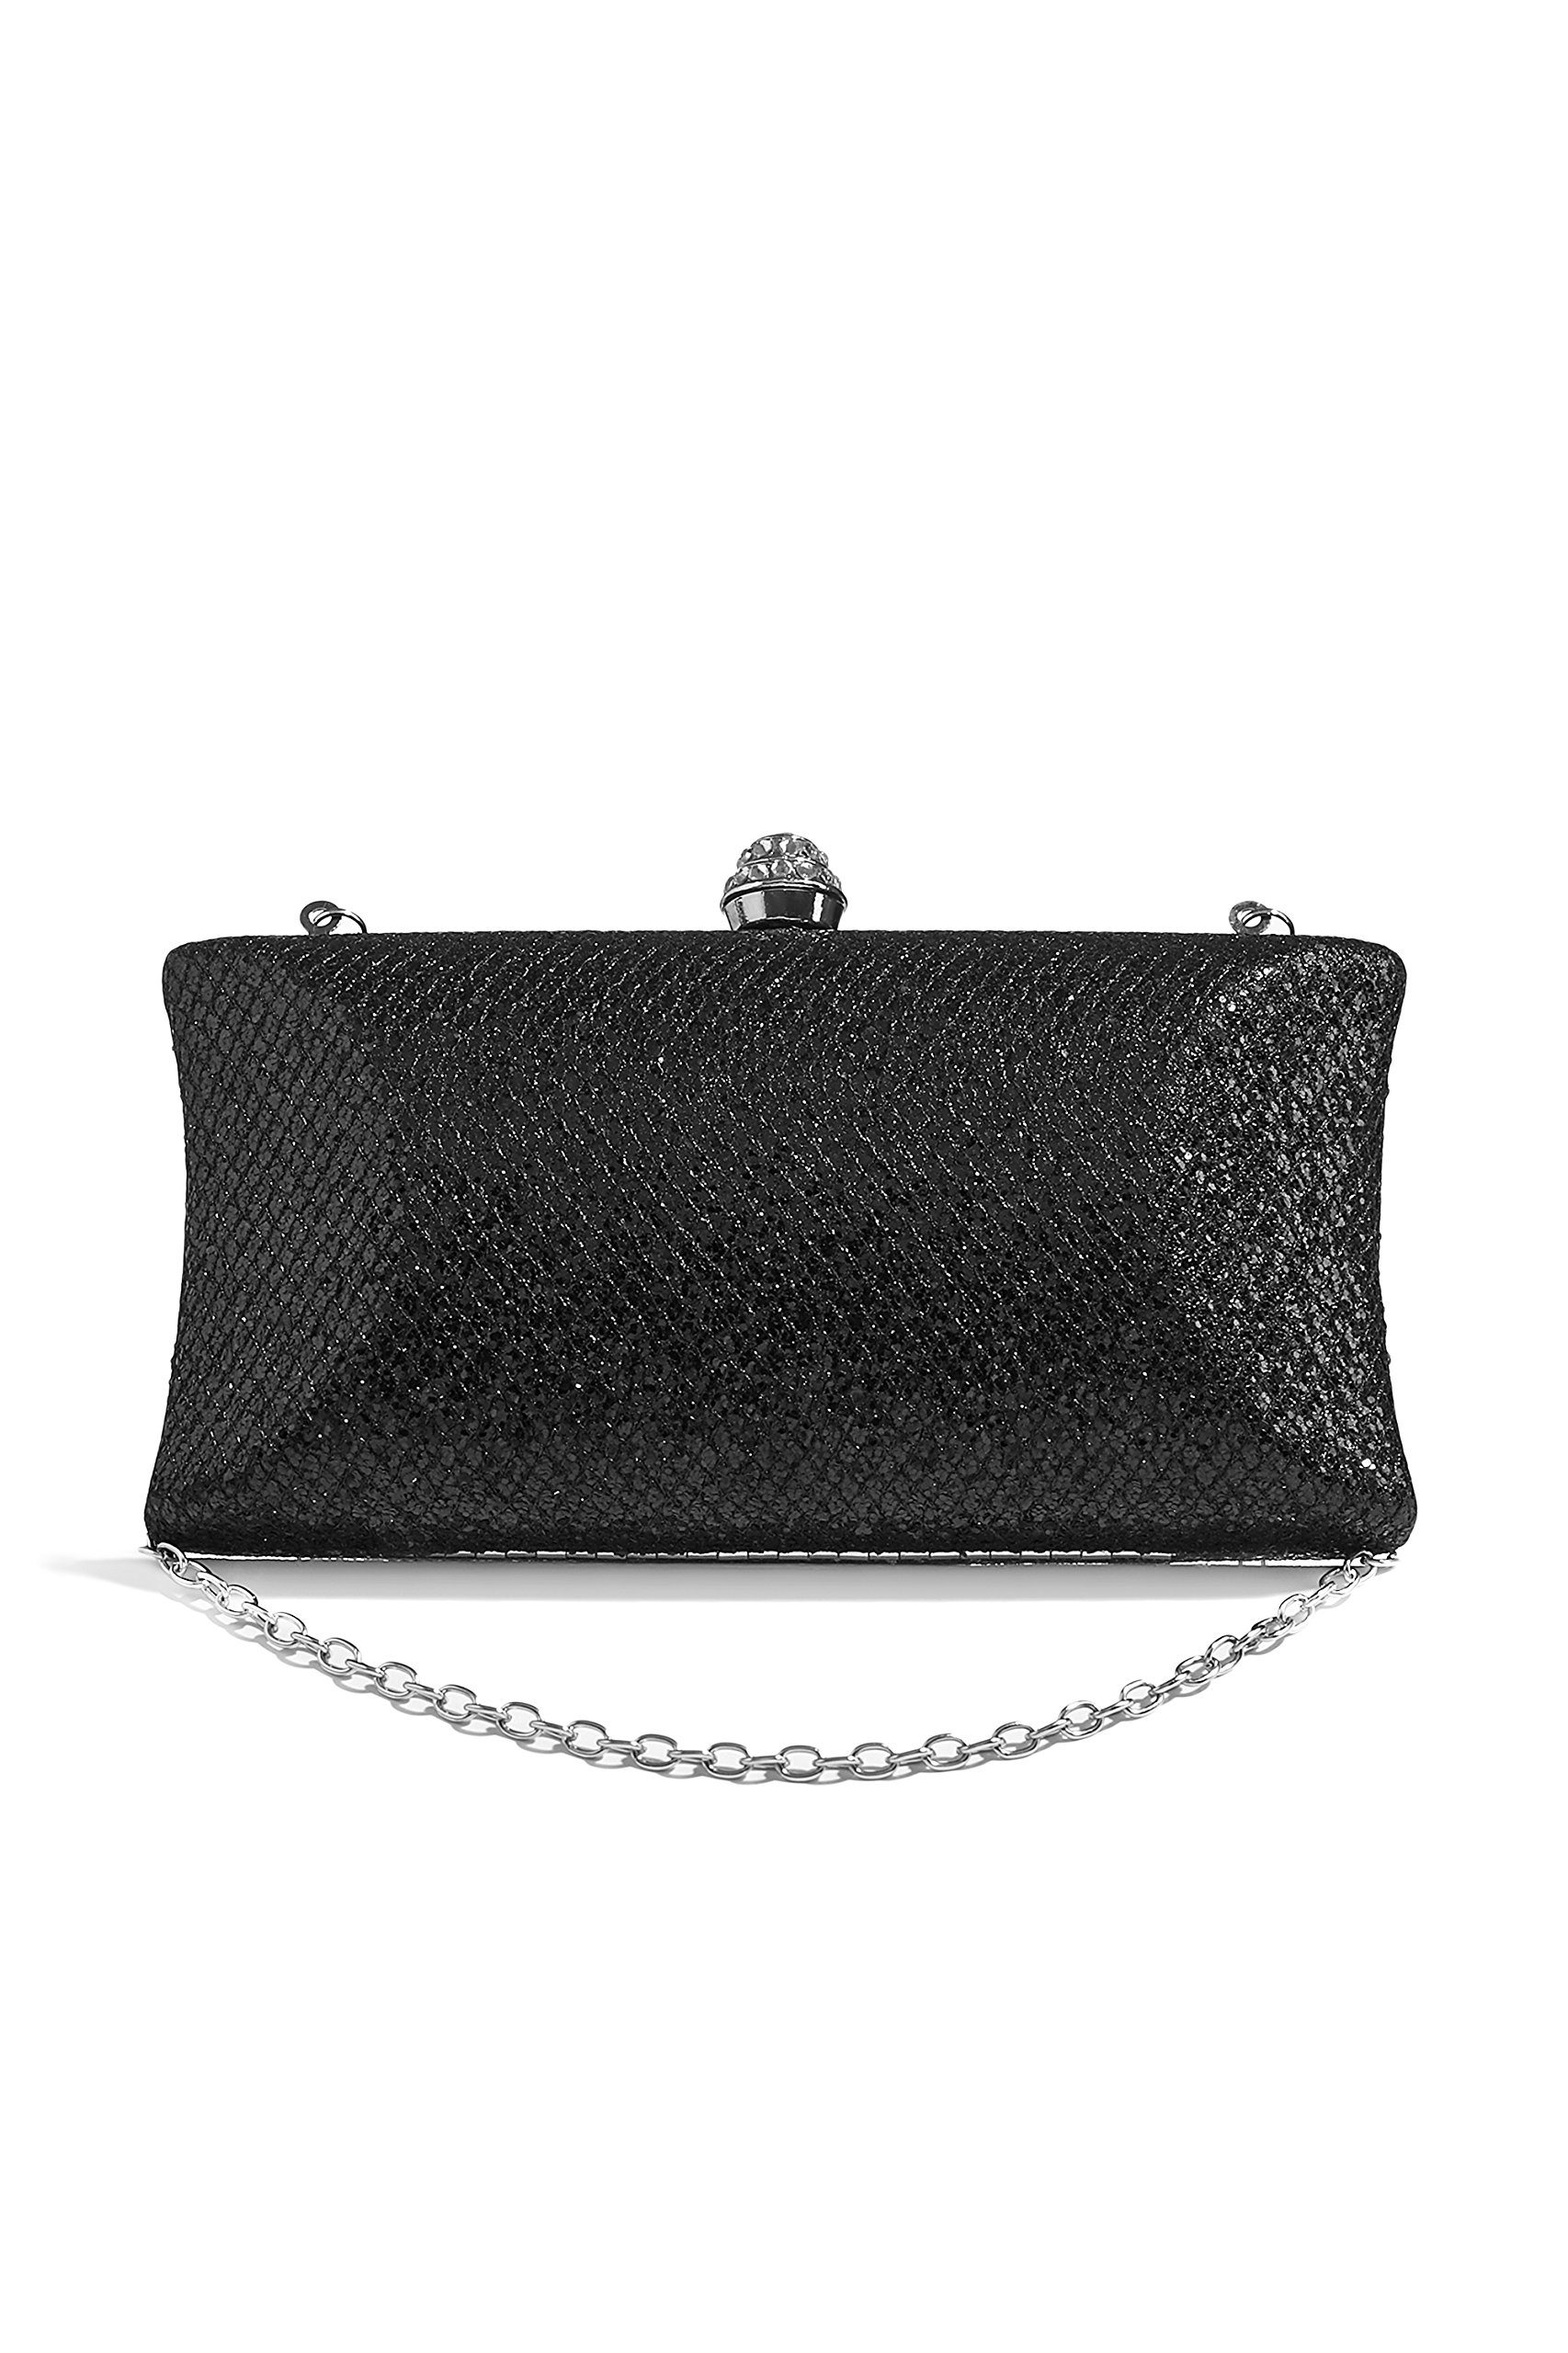 Women Sparkly Clutch Purse Hard Case Evening Bag Sequined Handbag With Chain Strap (black)